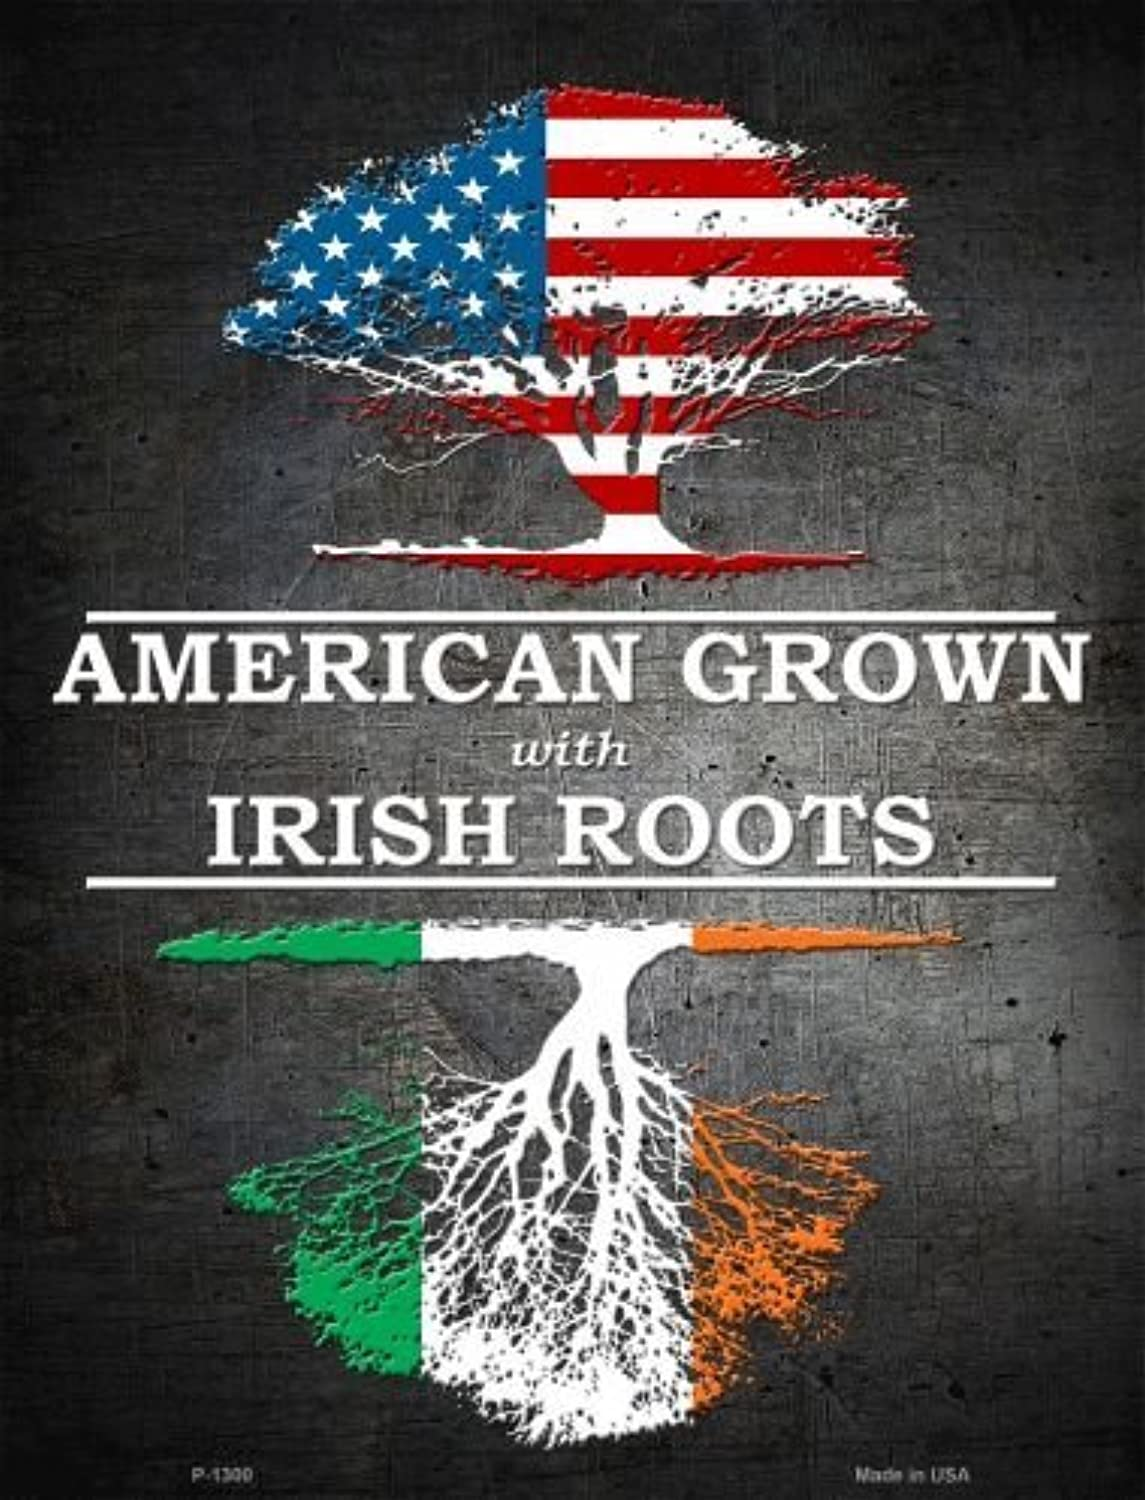 American Grown Irish Roots Metal Novelty Parking Sign P1300 by Smart Blonde